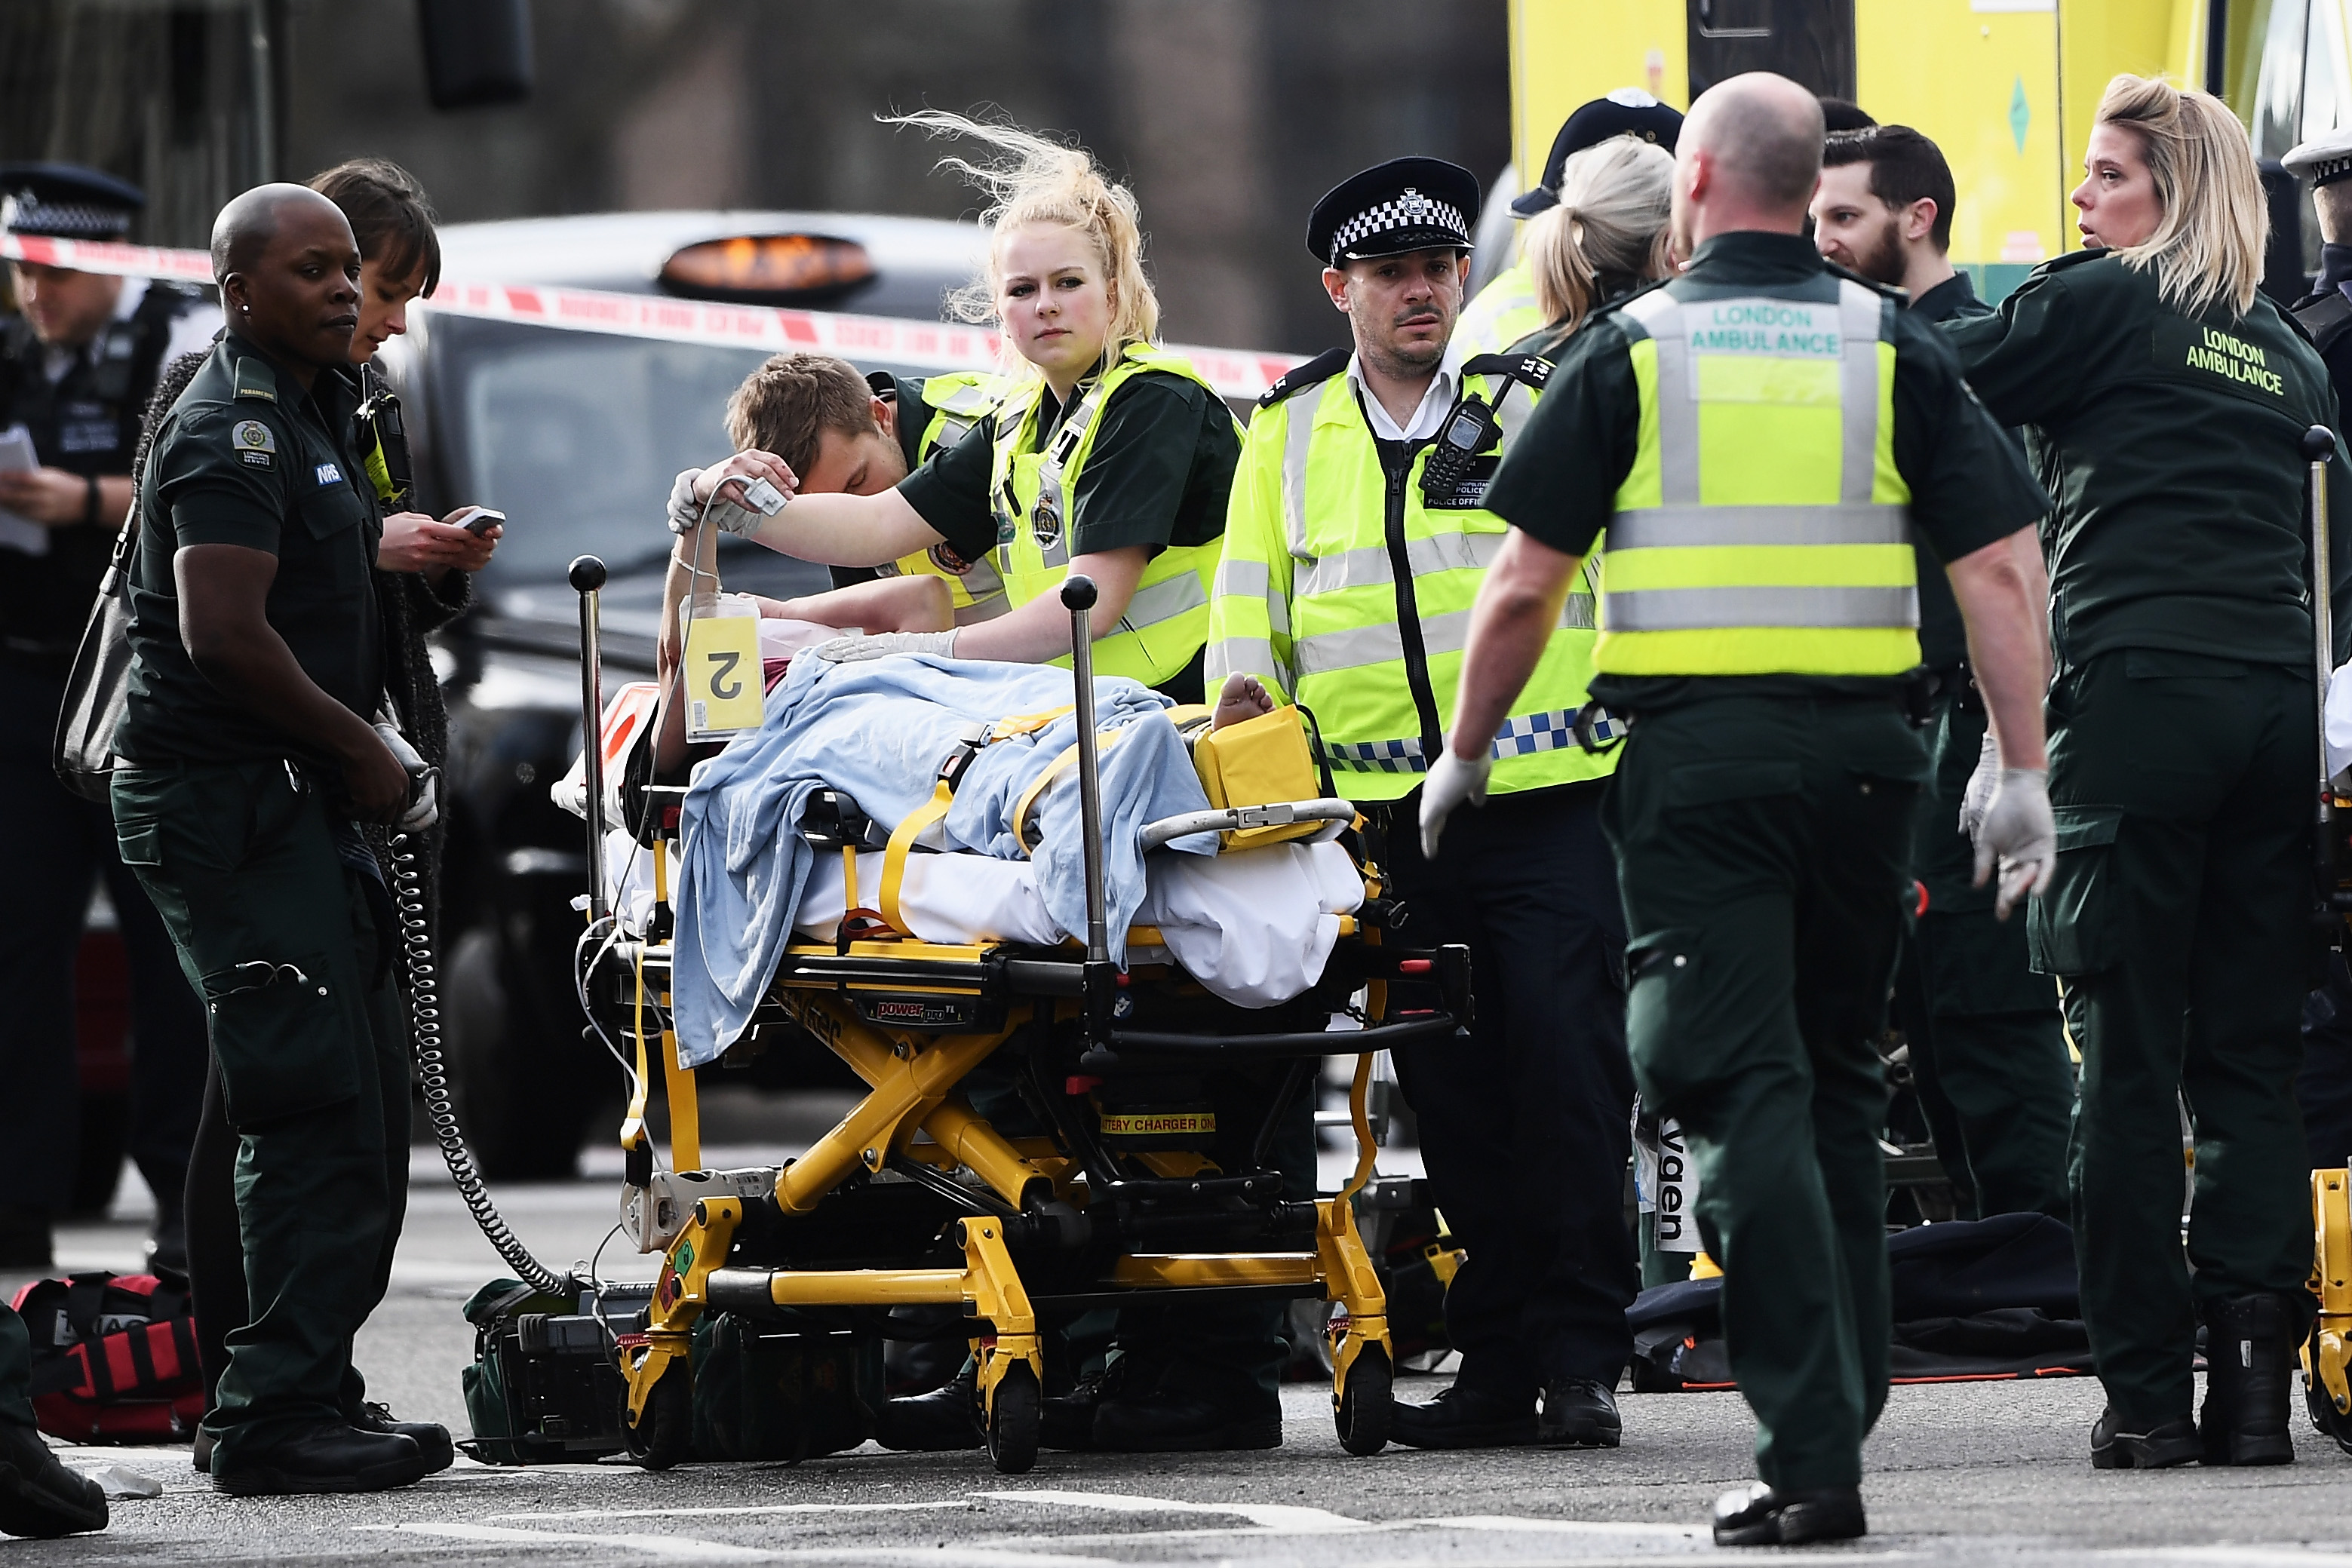 A member of the public is treated by emergency services near Westminster Bridge and the Houses of Parliament on March 22, 2017 in London, England.